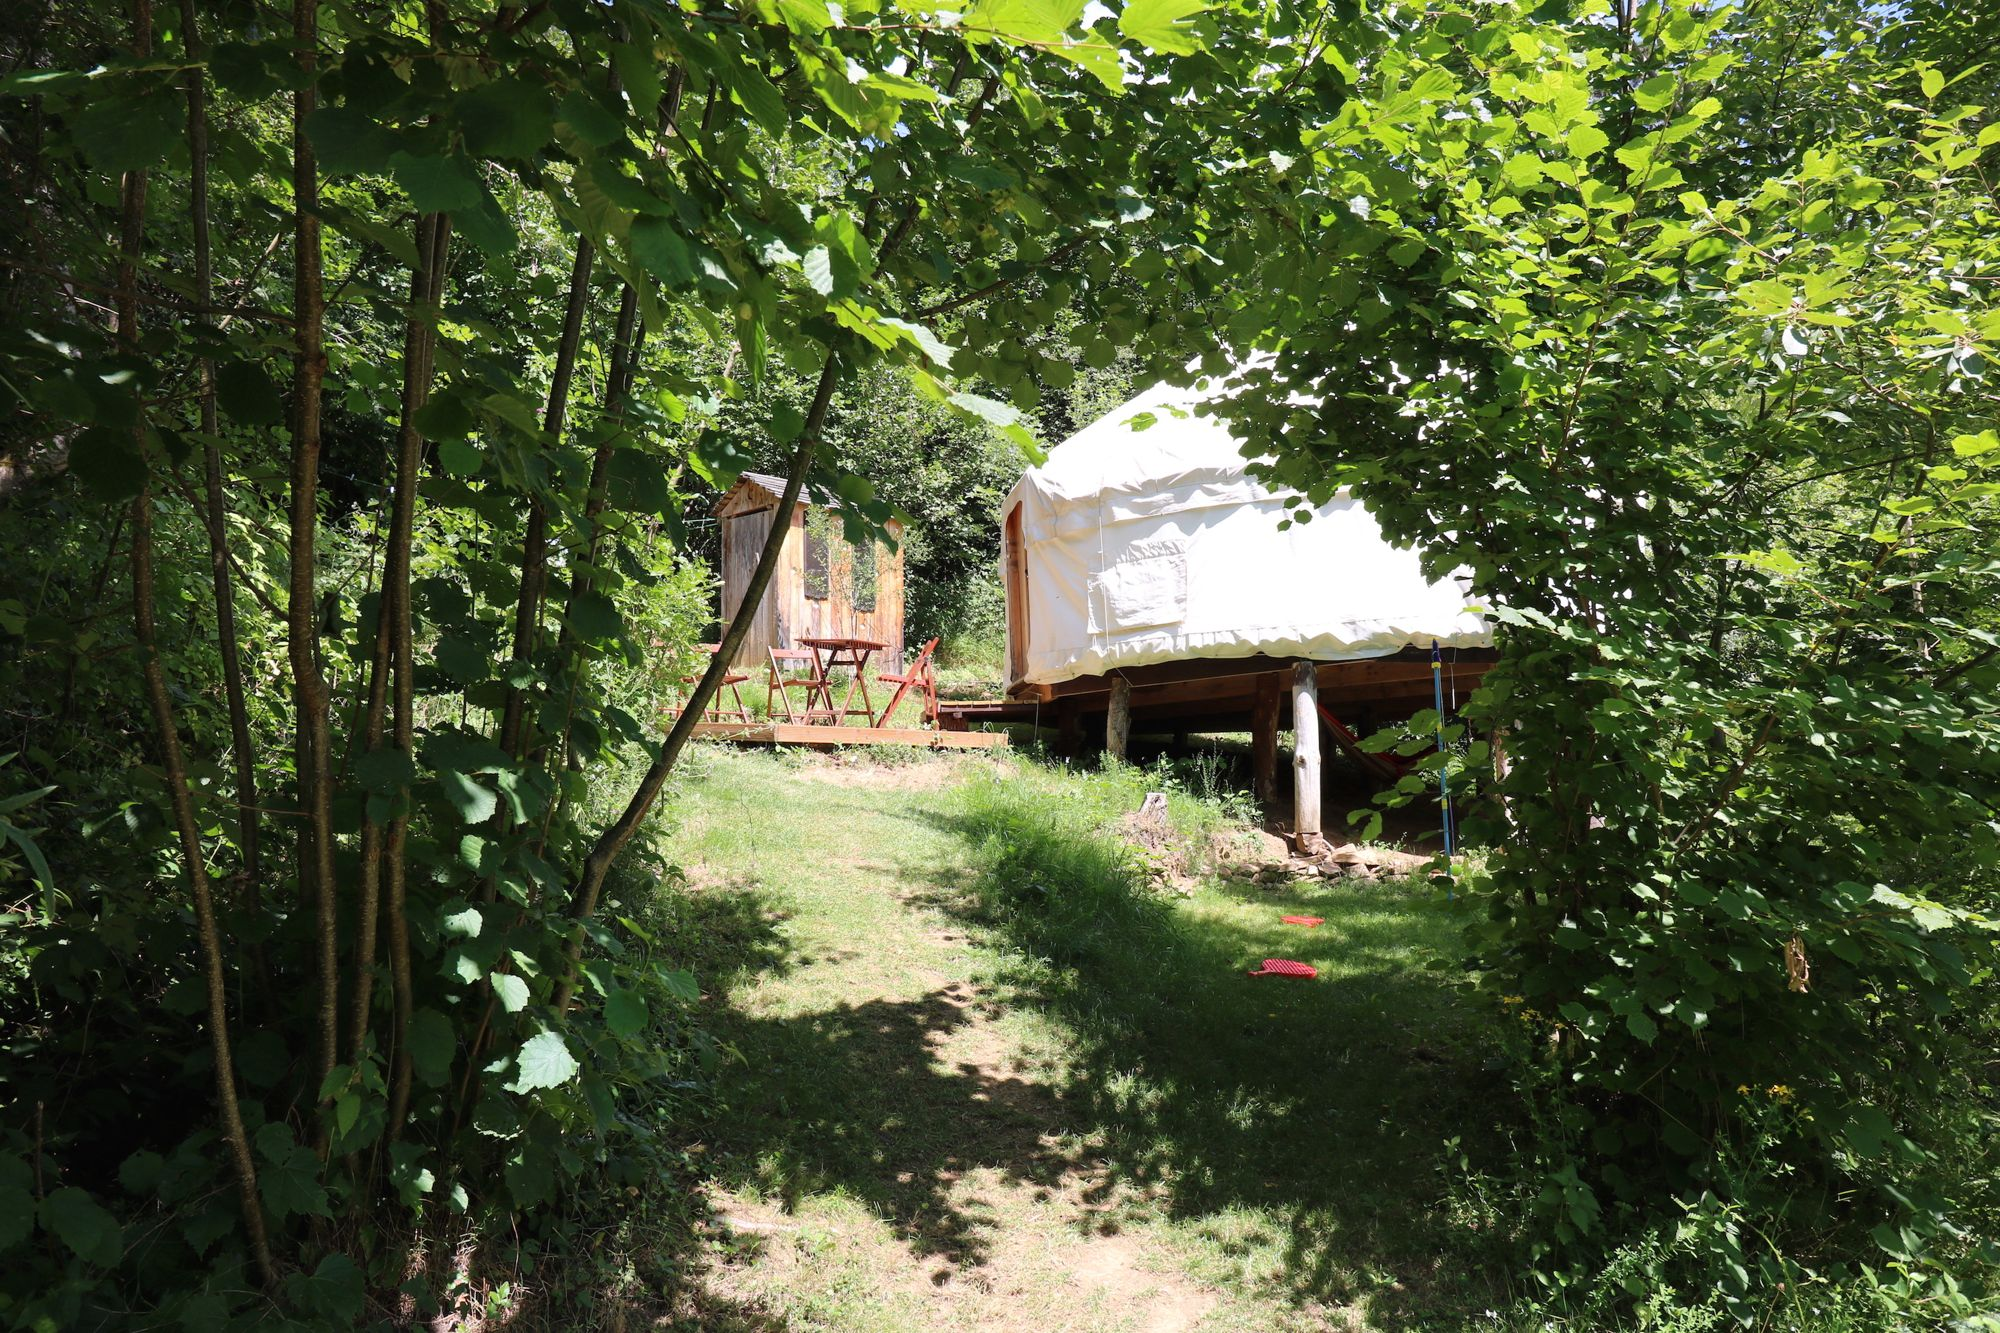 Natural heaven. This is one of the most relaxing and beautifully isolated glamping sites in central France.